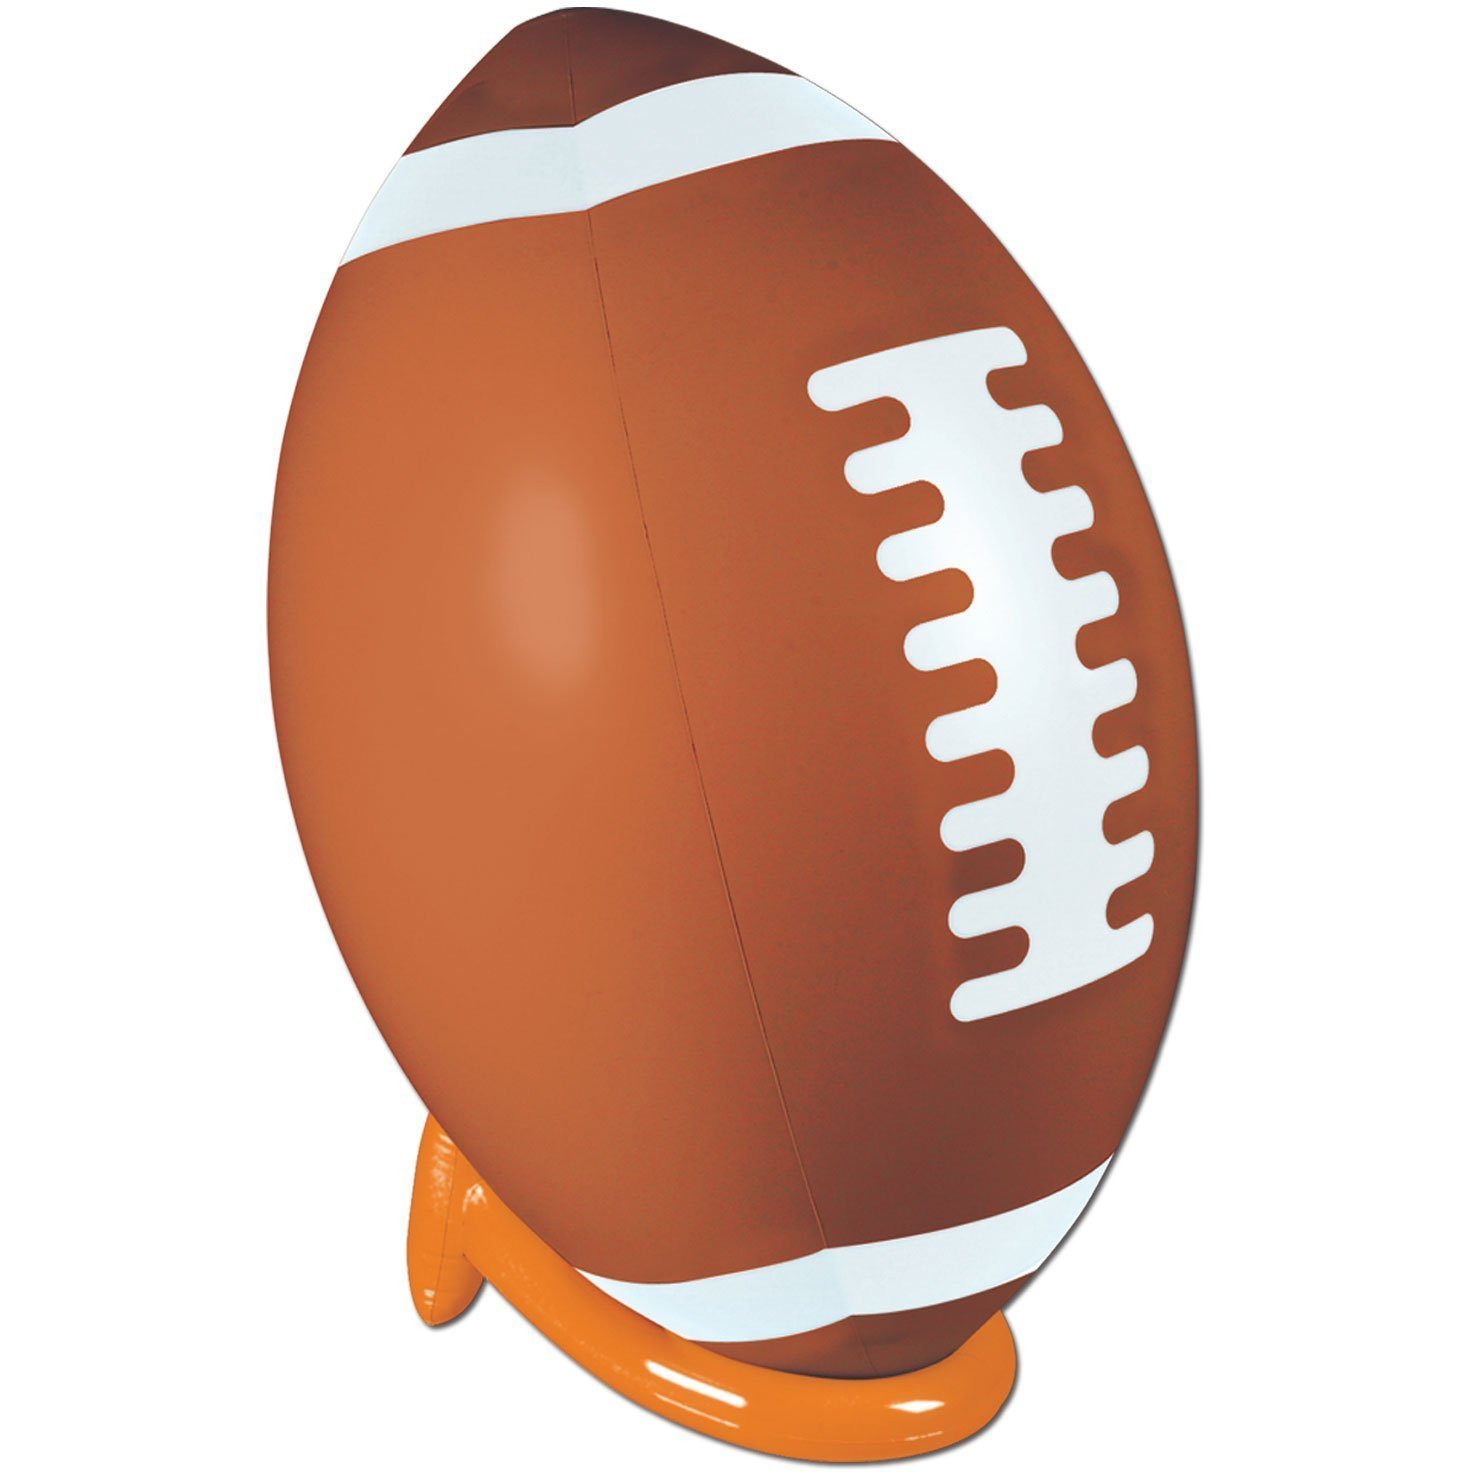 Inflatable Football & Tee Set 39in. Pkg 6, Ideal for eye-catching displays By Beistle by